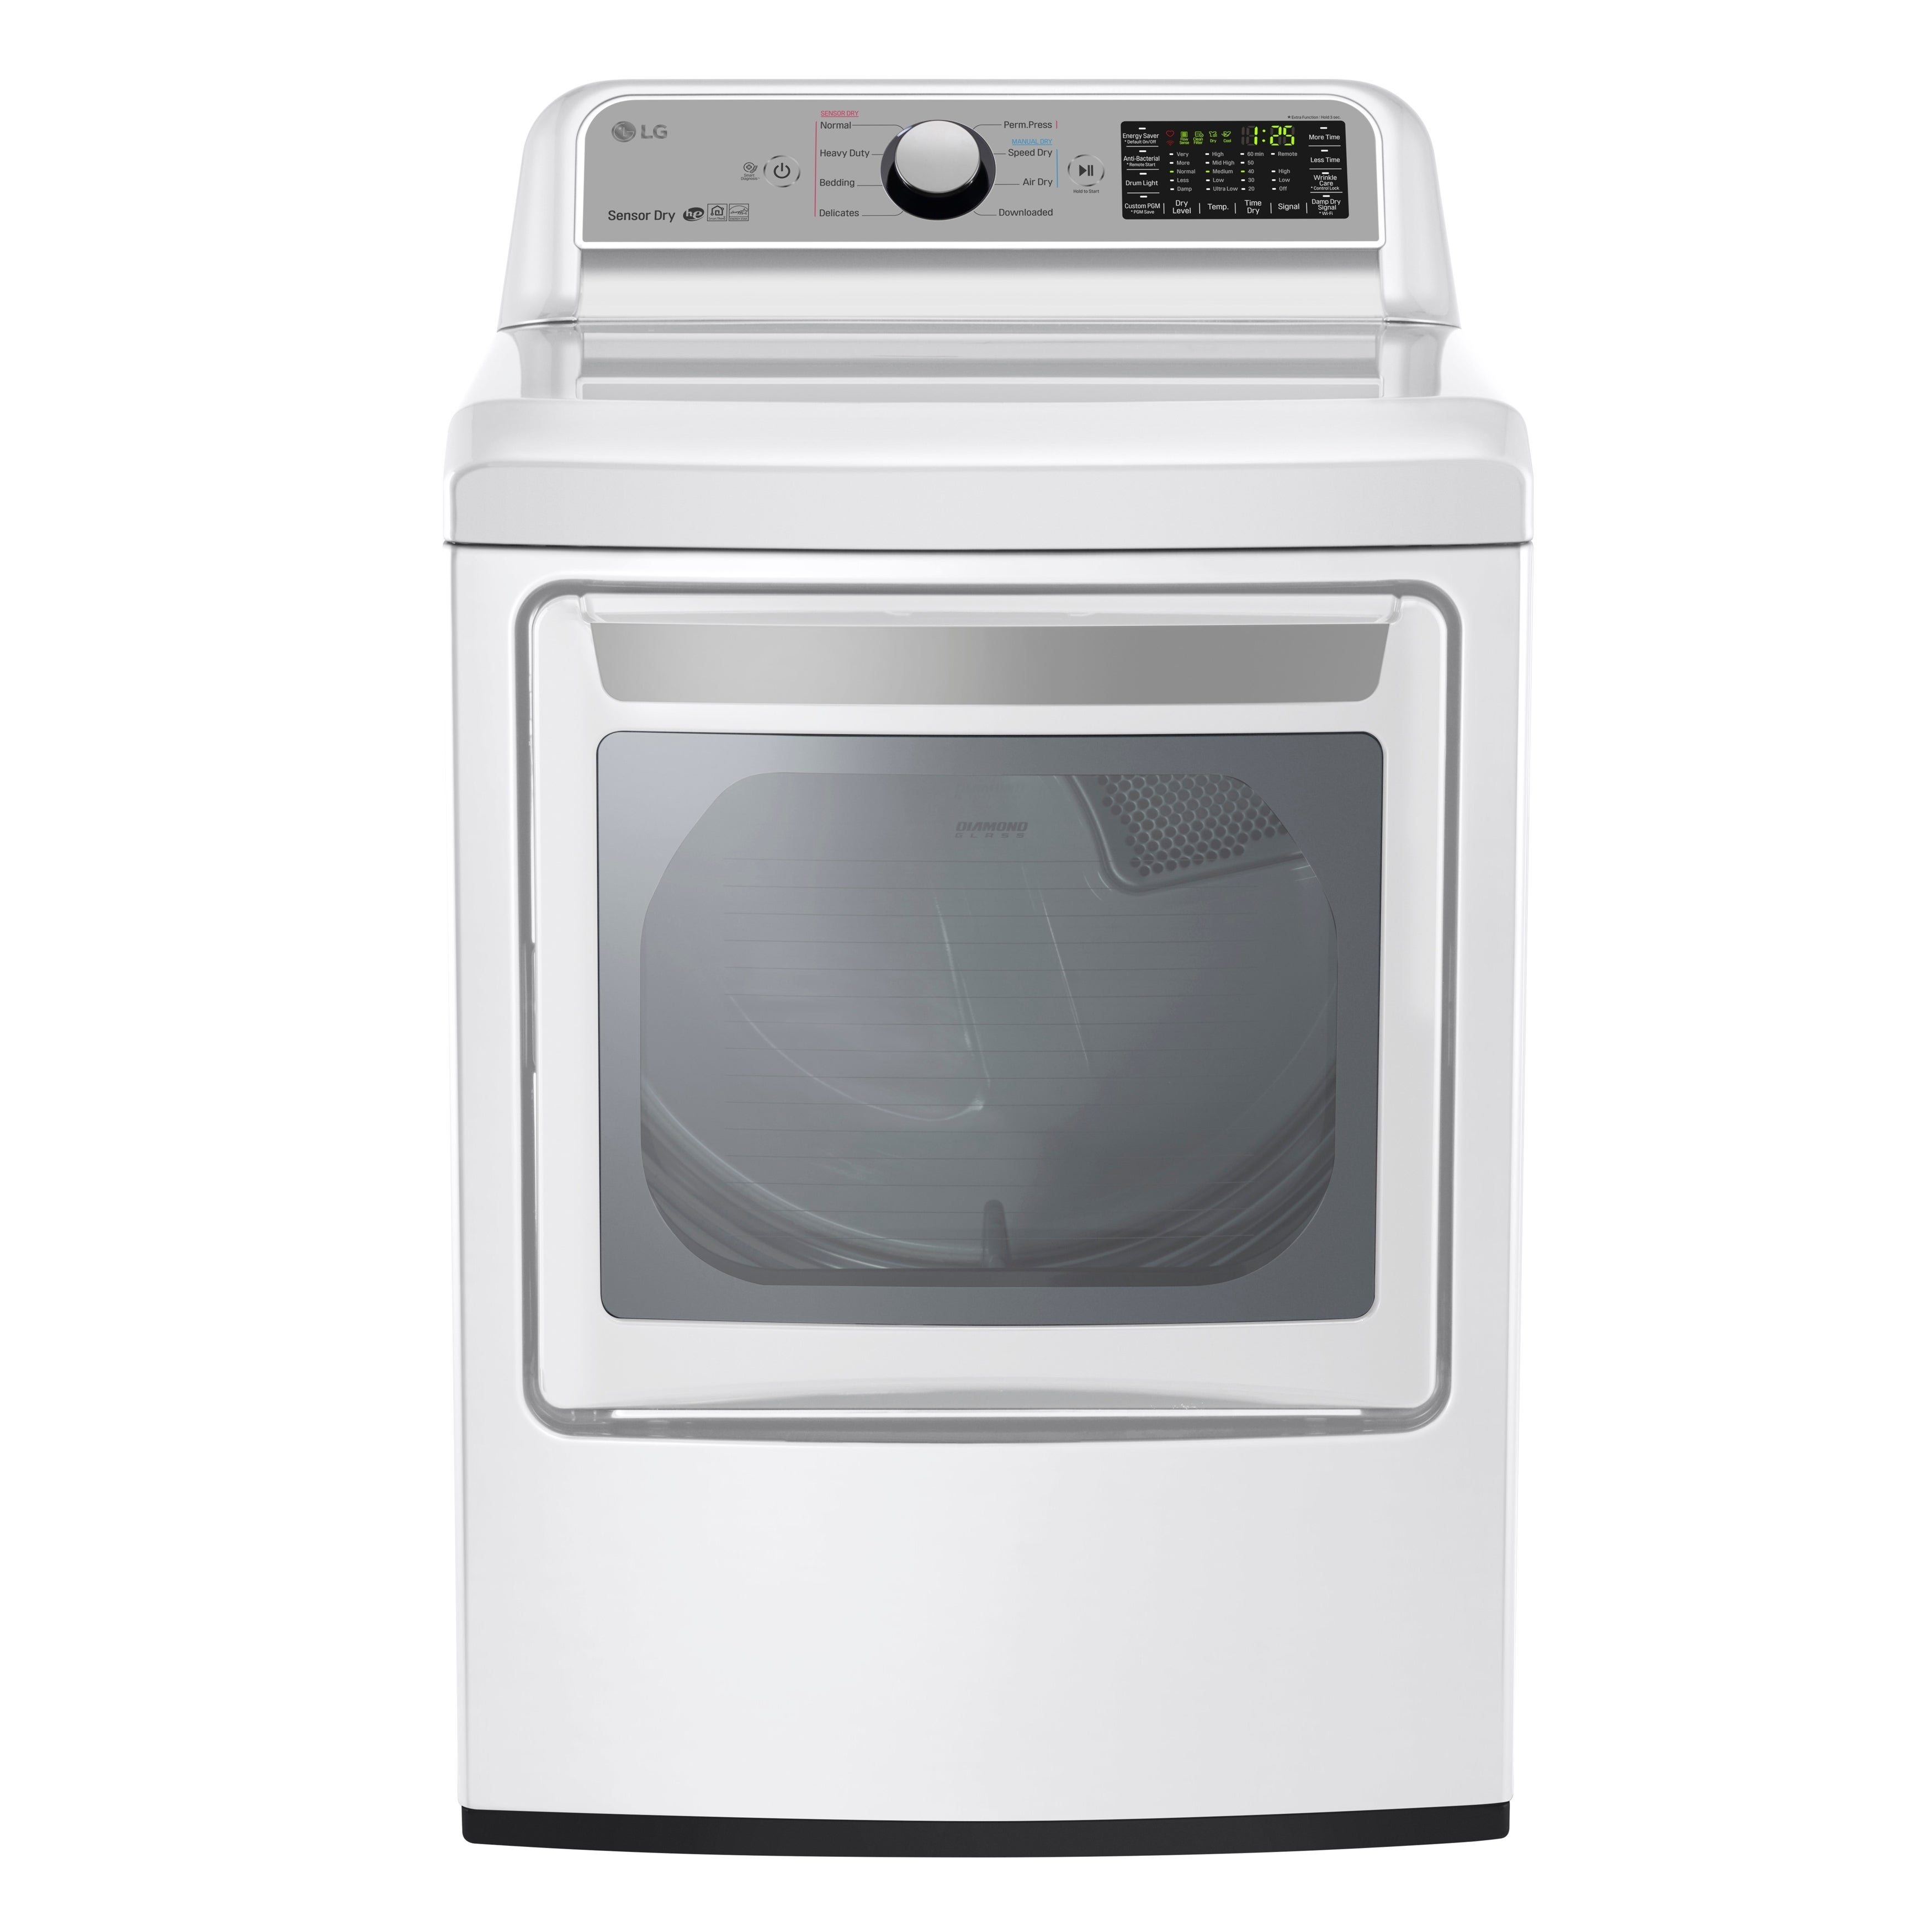 LG DLE7200WE 7.3 cu. ft. Super Capacity Electric Dryer wi...